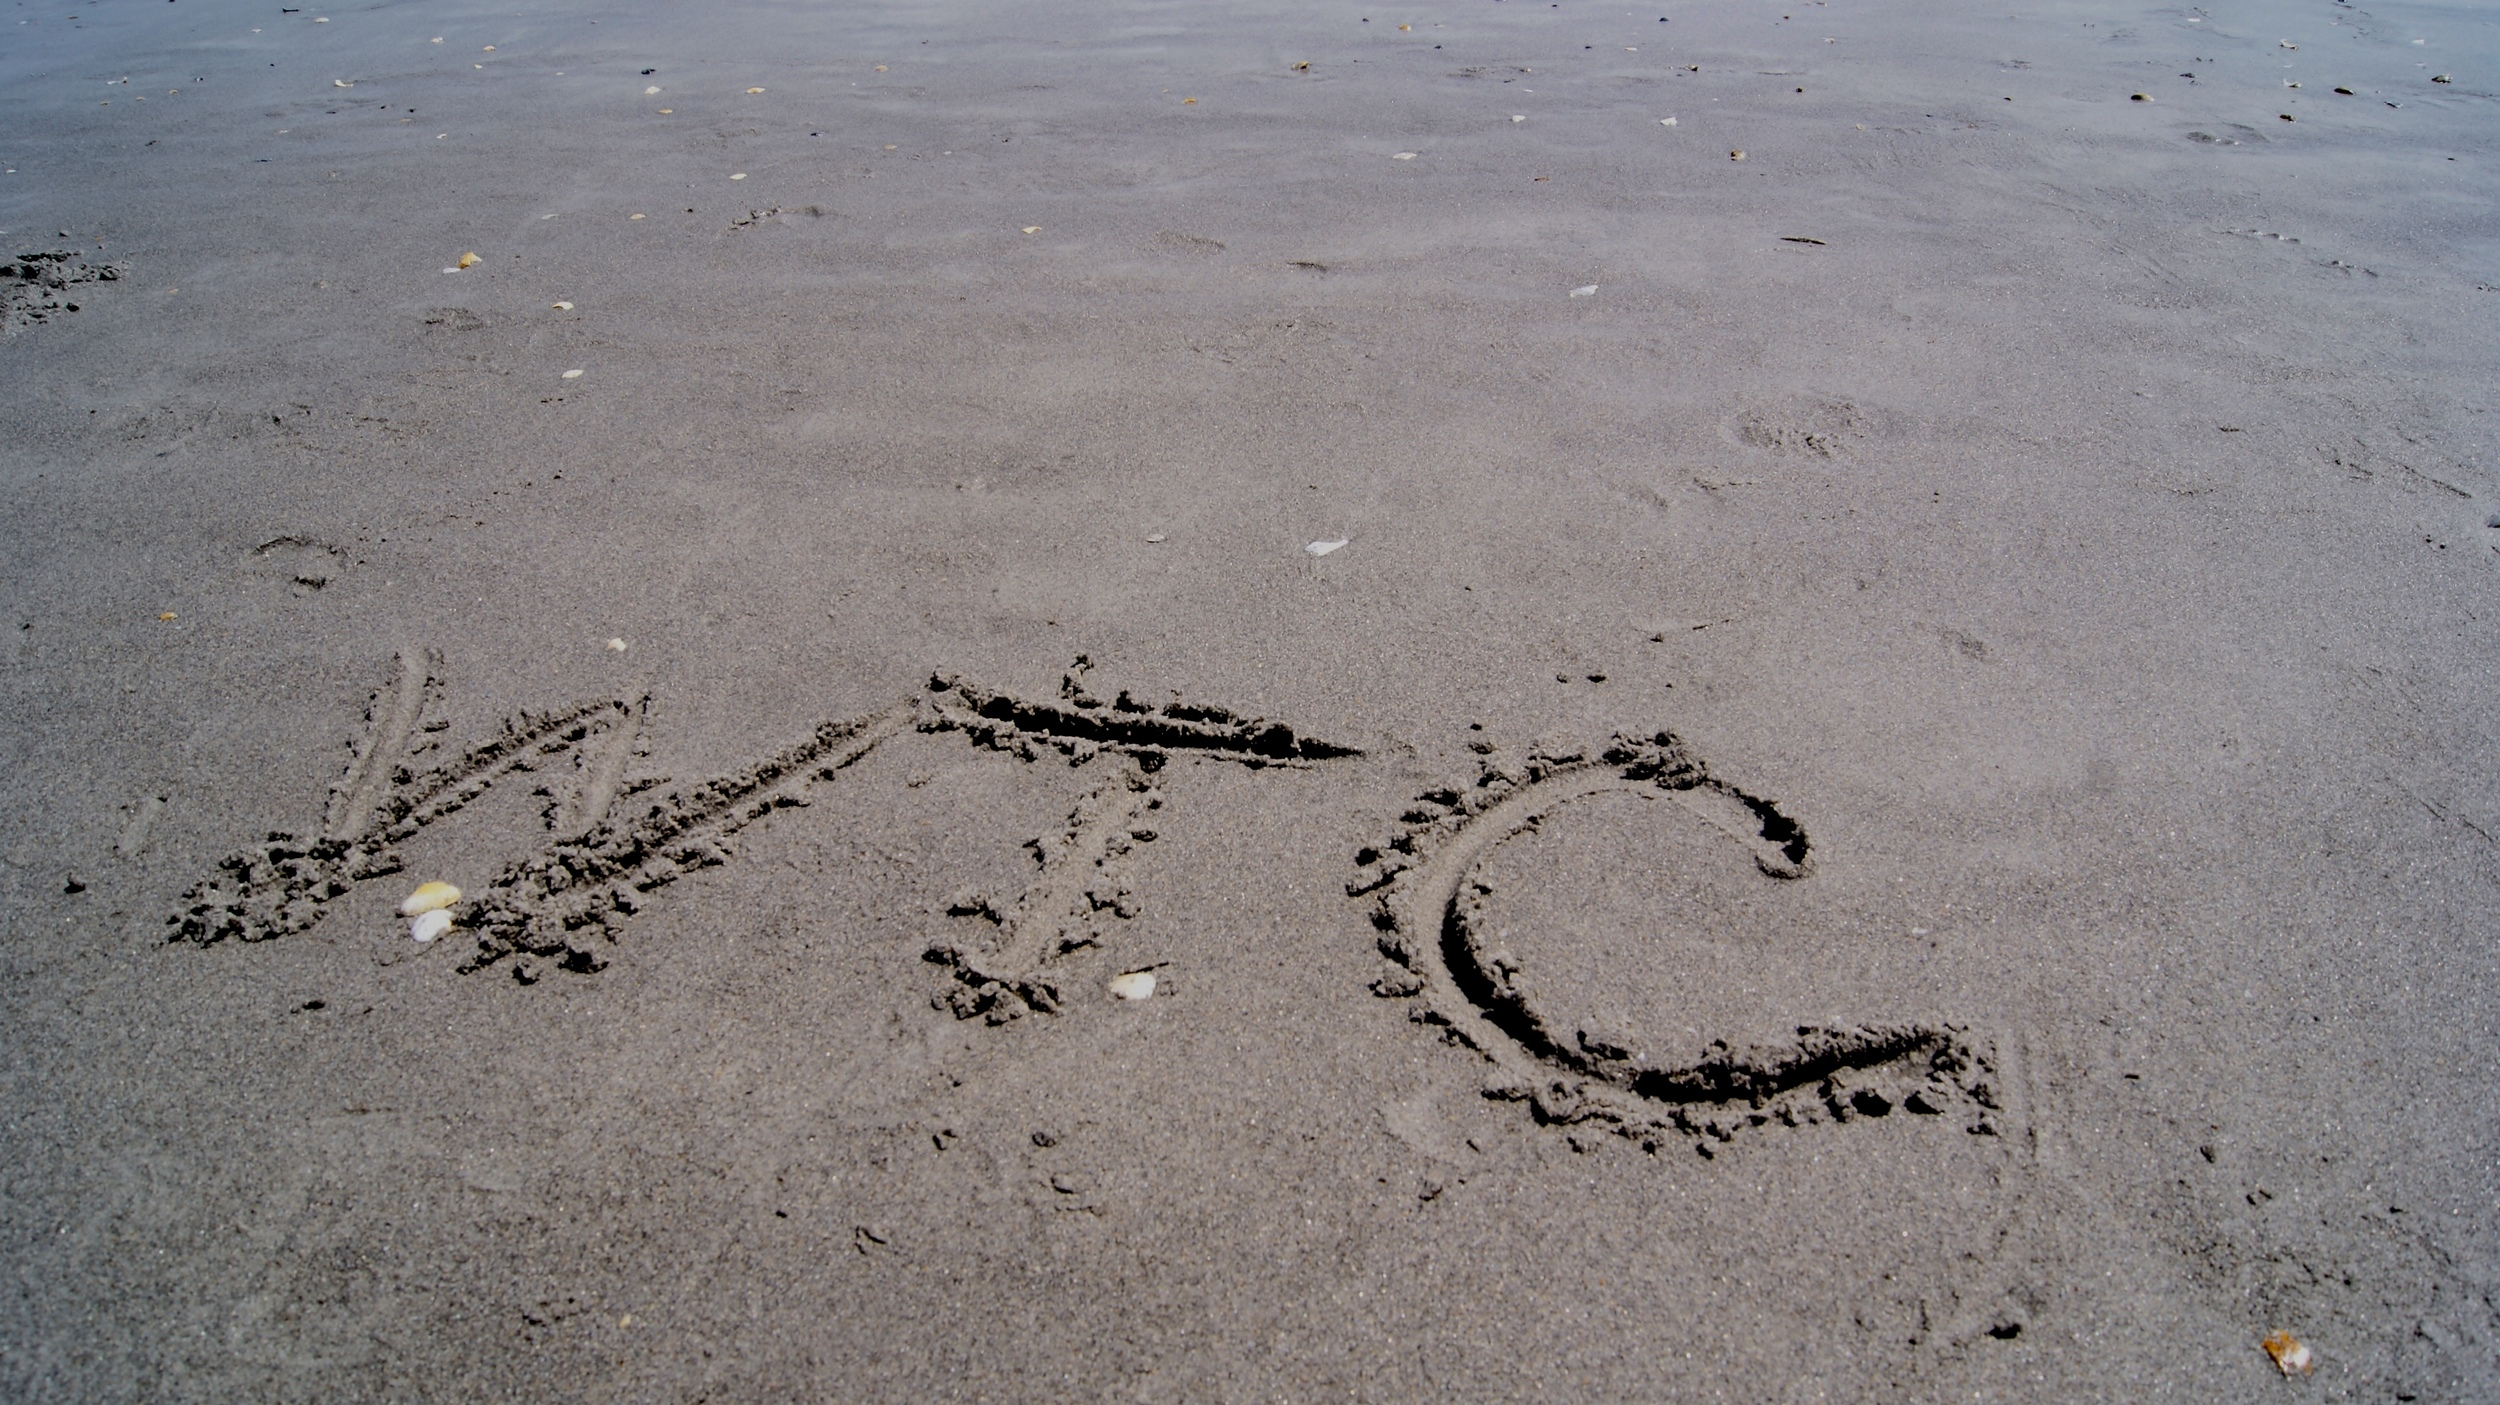 sandy beach initials